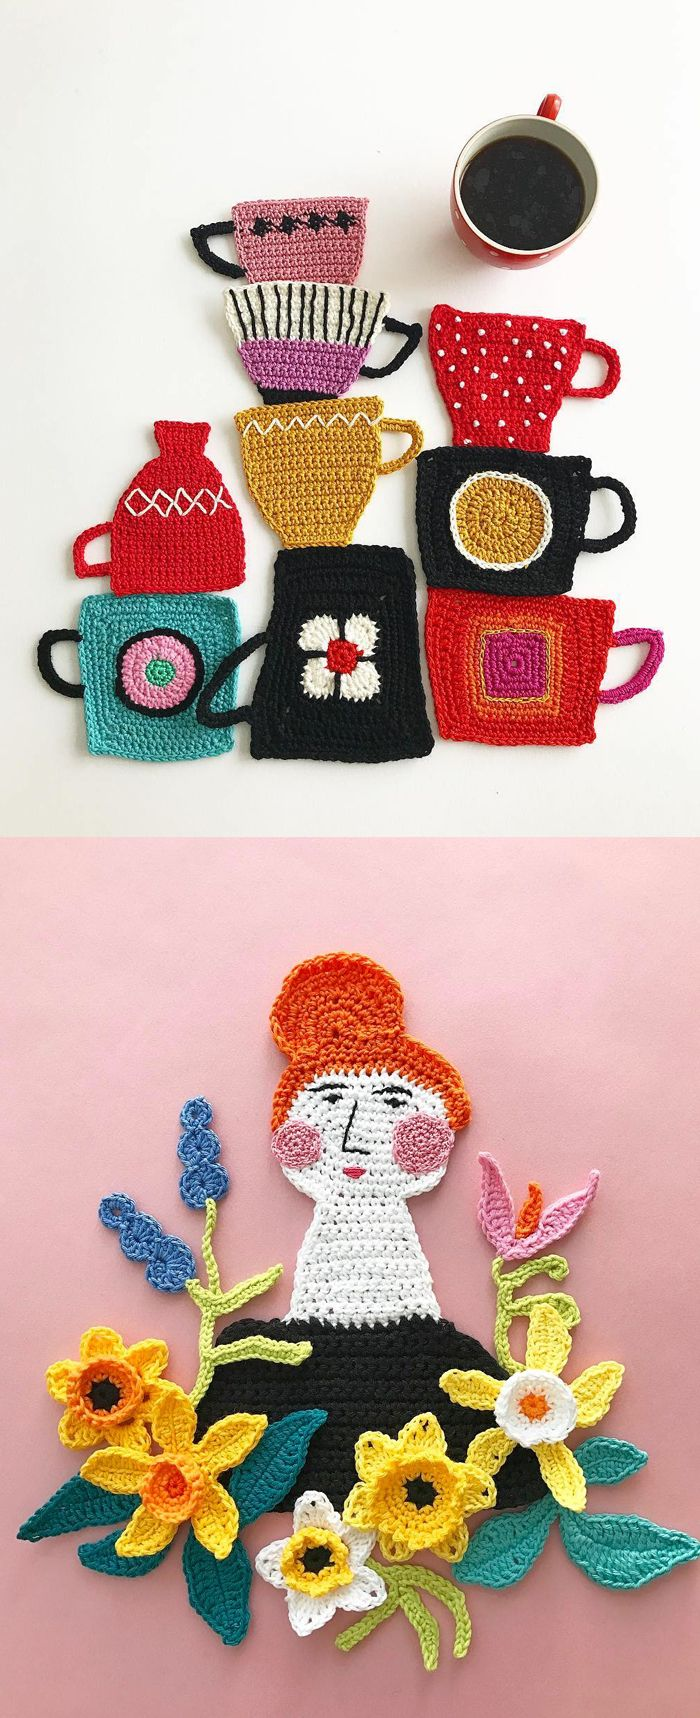 Crochet art by Tuija Heikkinen // crochet // fiber art // embroidery illustration